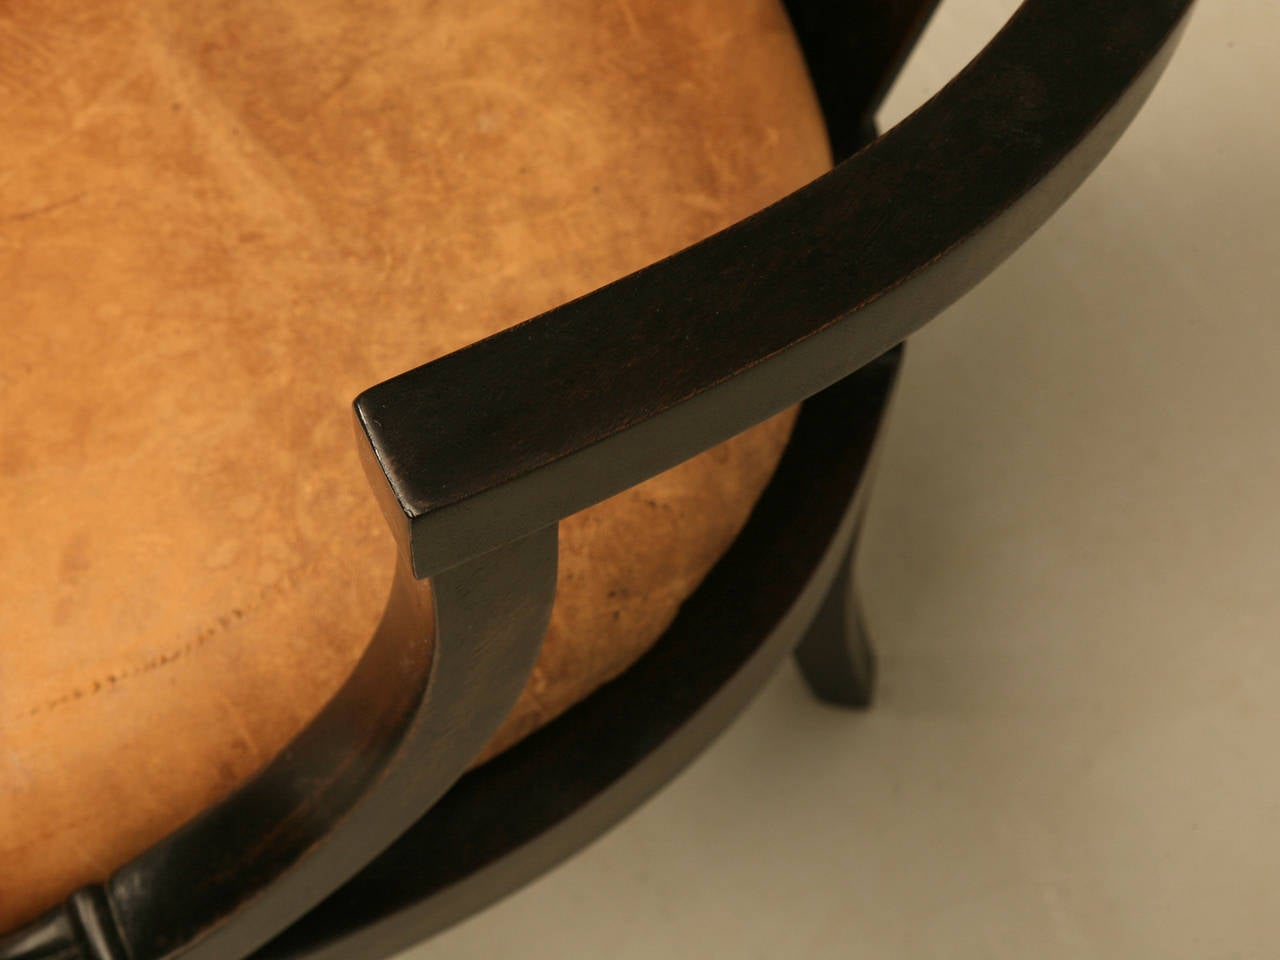 20th Century French Ebonized Mahogany Antique Desk Chair with a Leather Seat Cushion For Sale